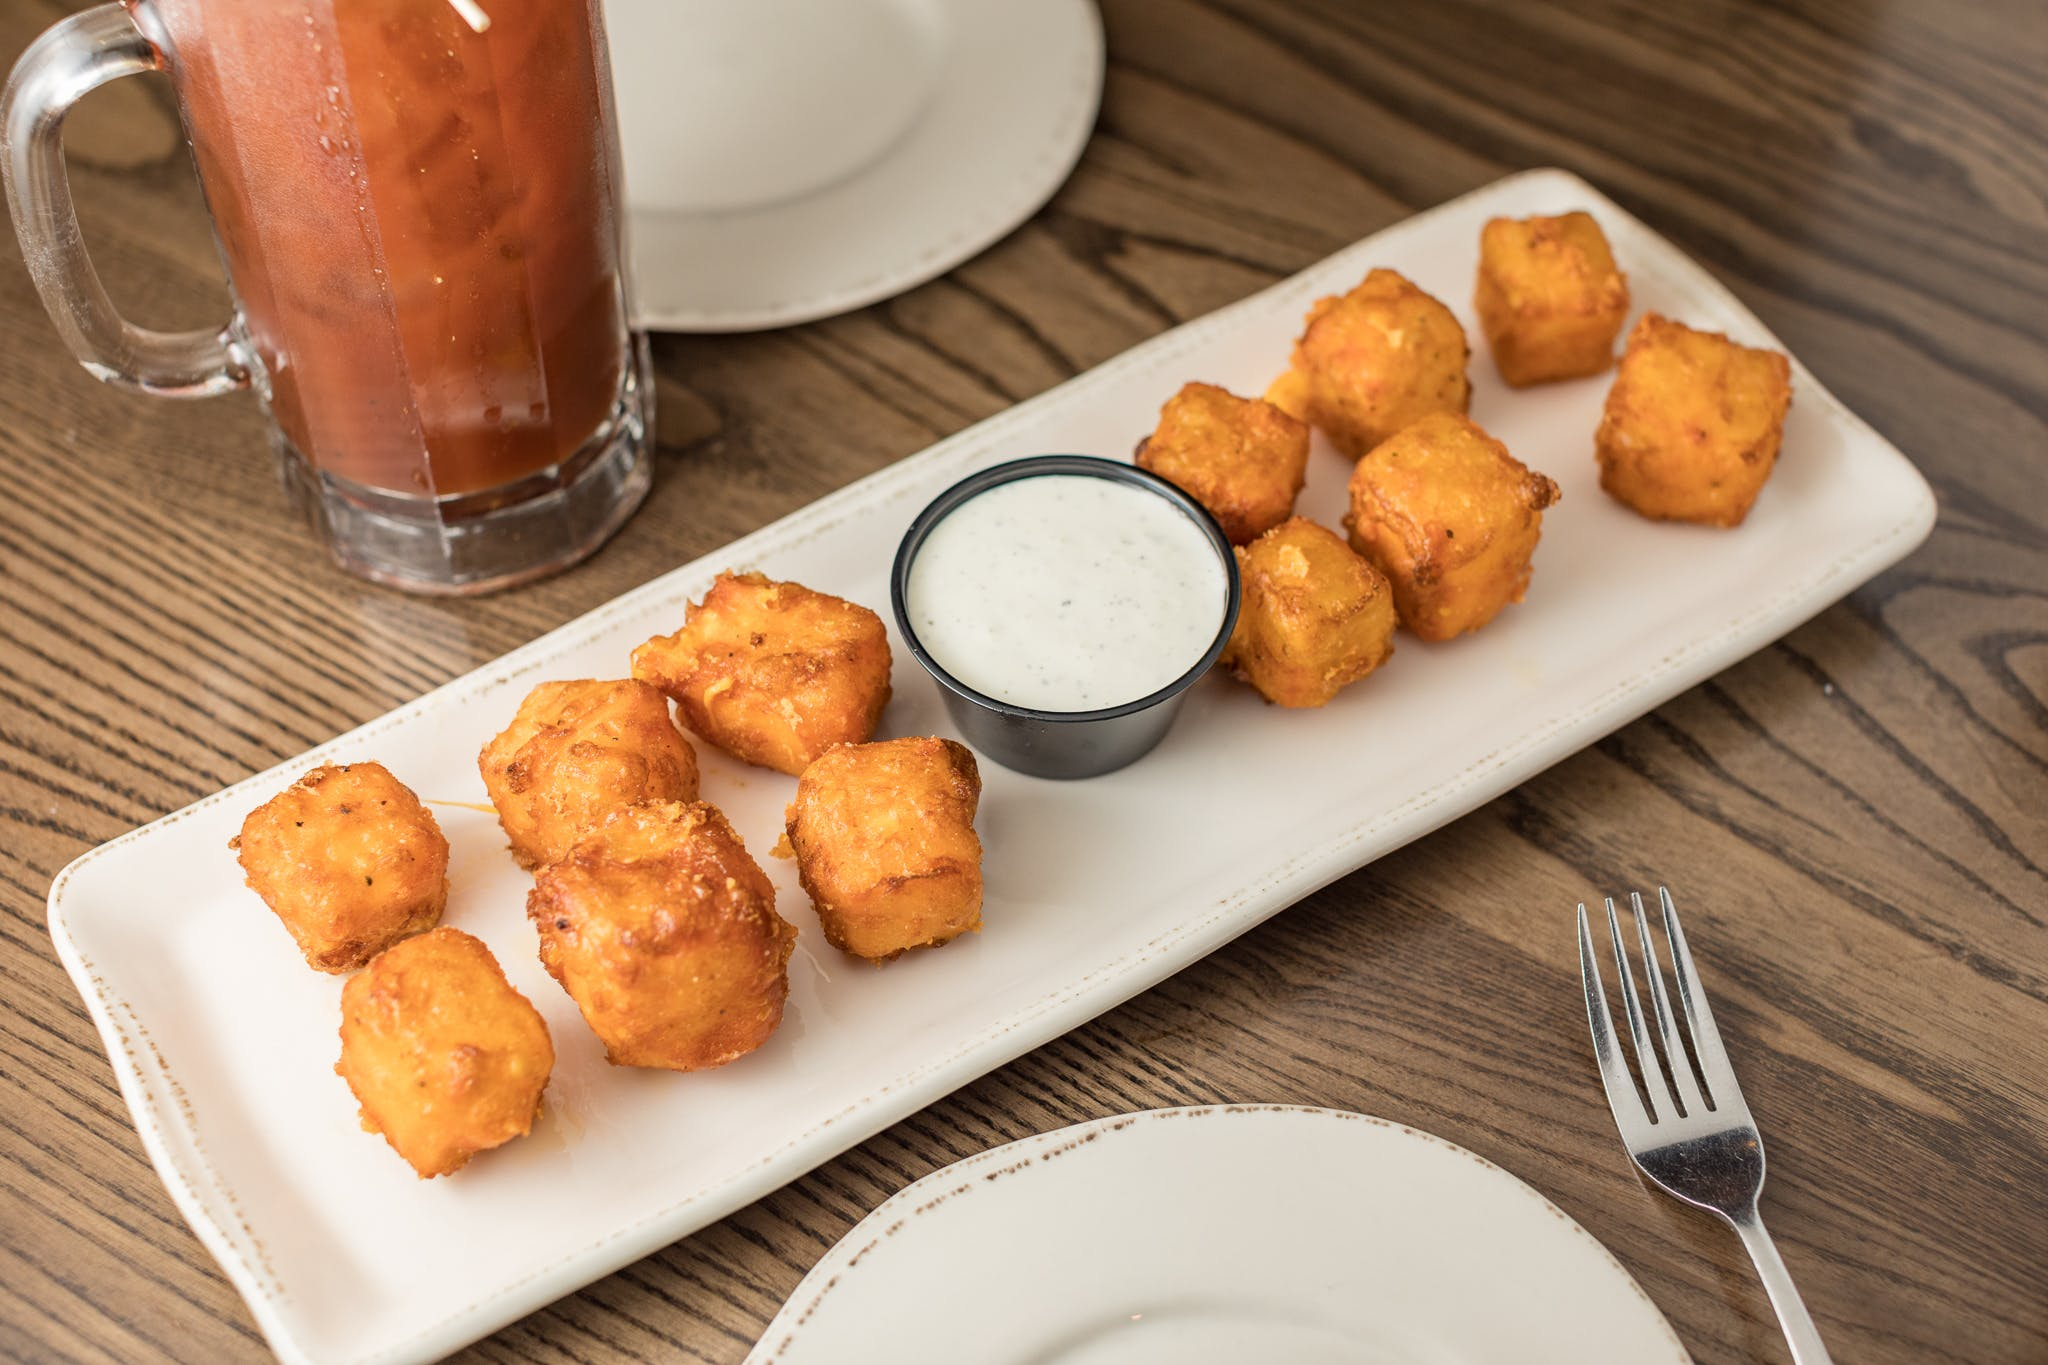 Wisconsin Cheese Curds from Grizzly's Wood-Fired Grill in Eau Claire, WI